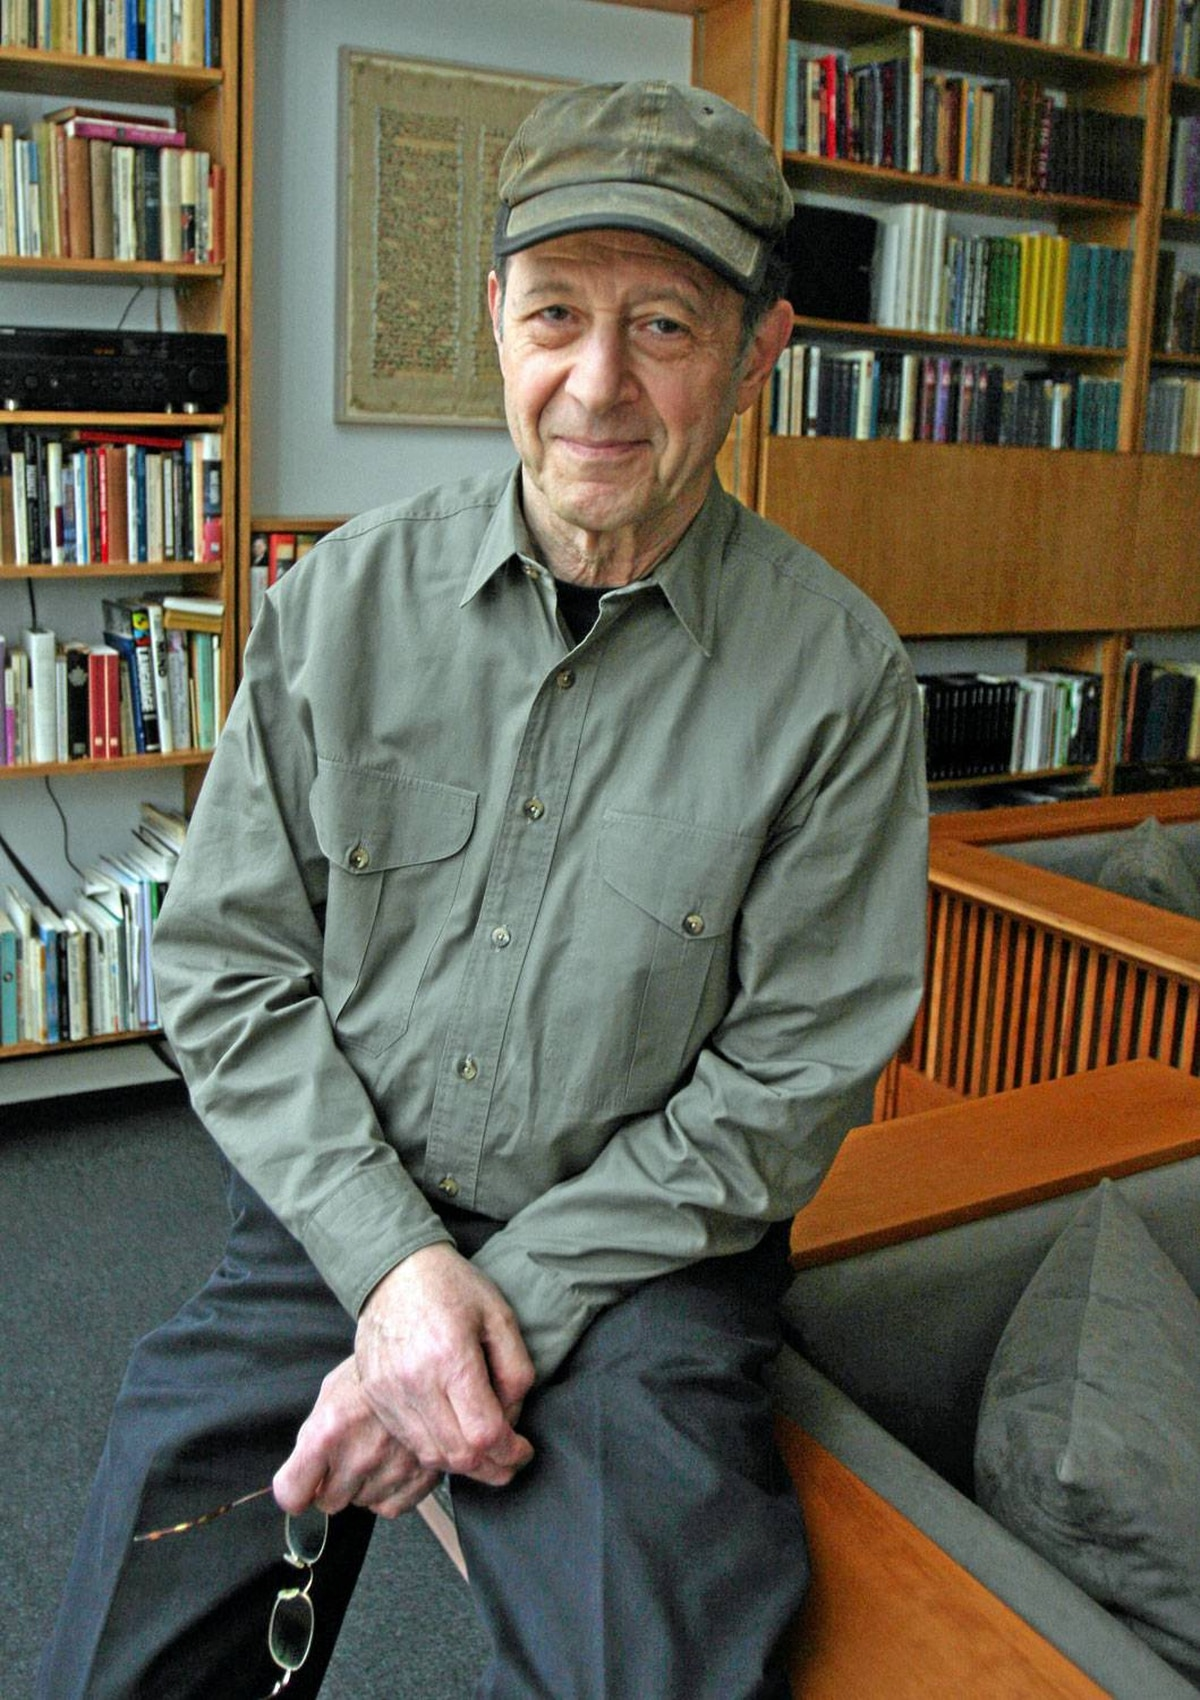 Composer Steve Reich won the 2009 Pulitzer Prize in music for his piece Double Sextet.